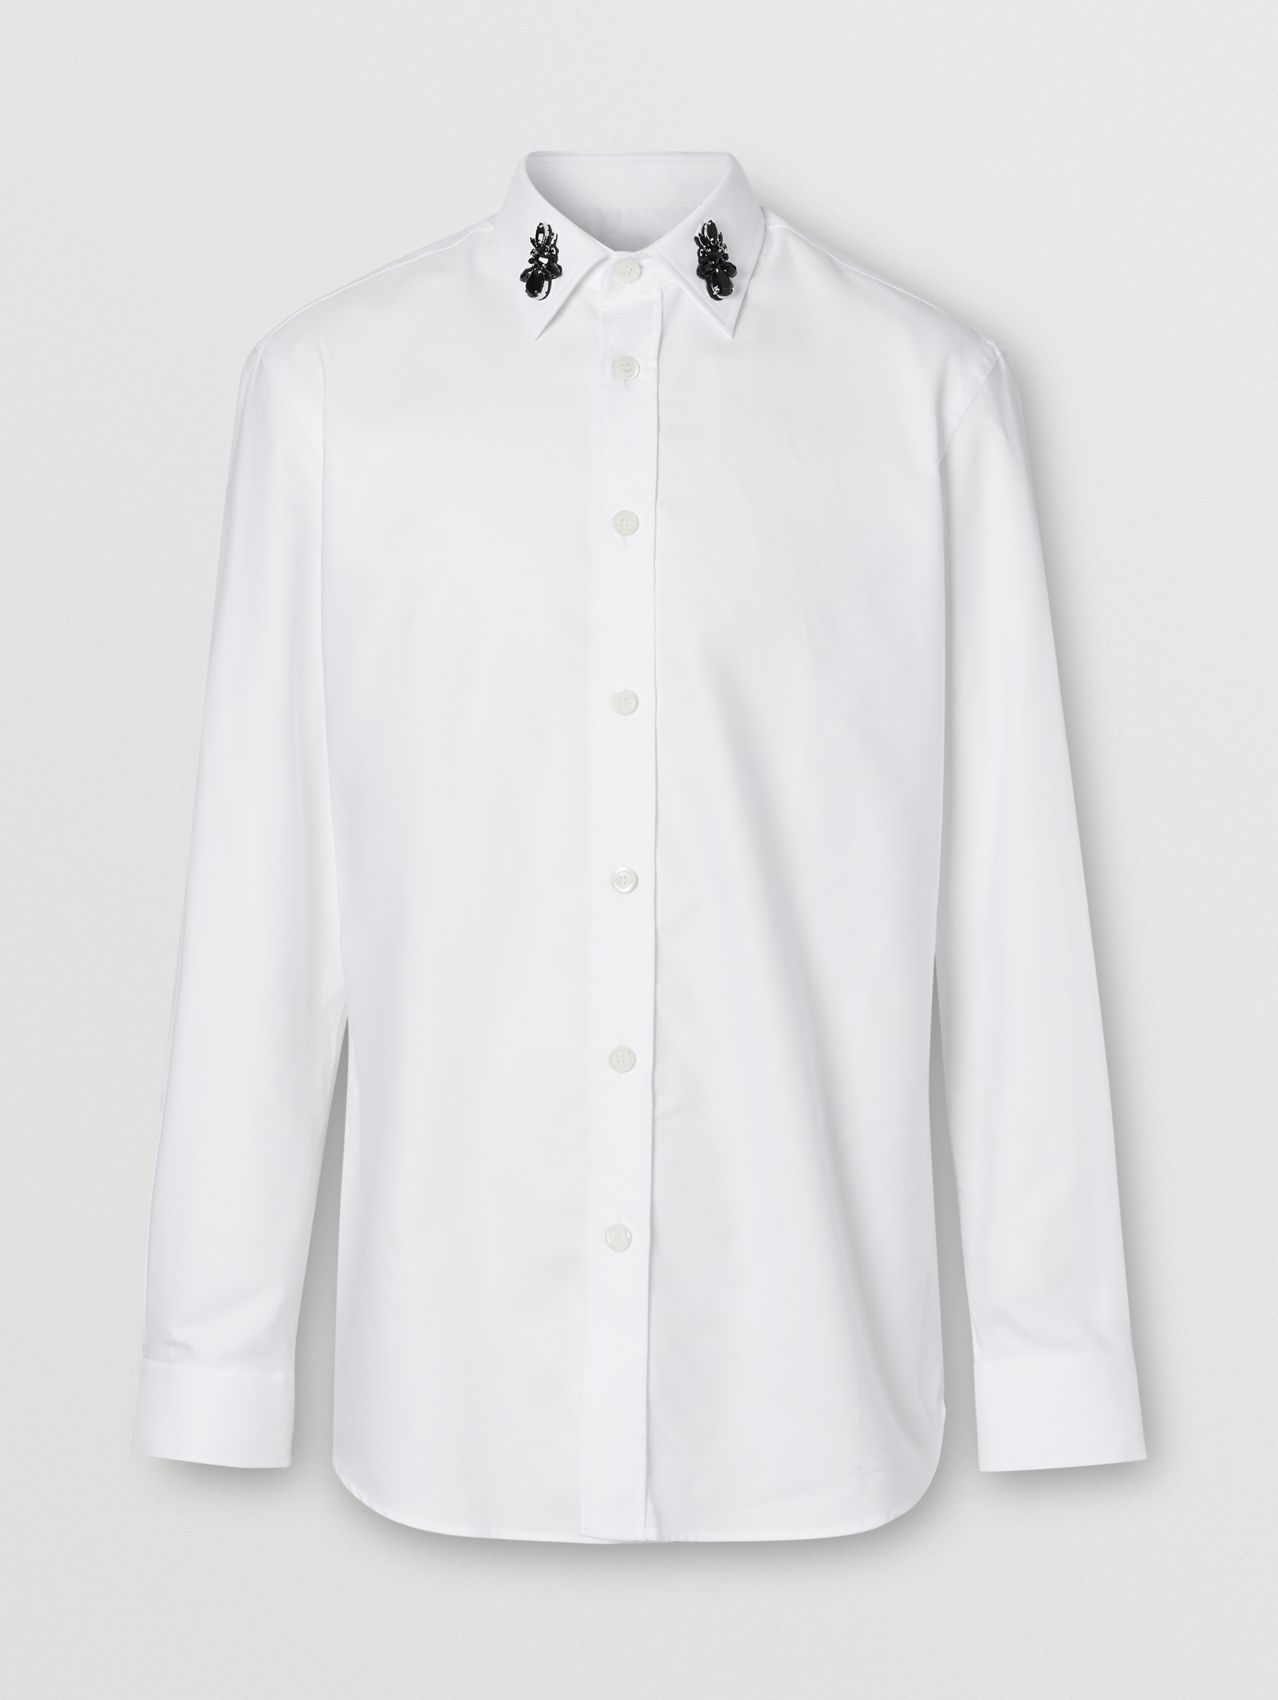 Classic Fit Crystal Detail Cotton Oxford Dress Shirt (White)